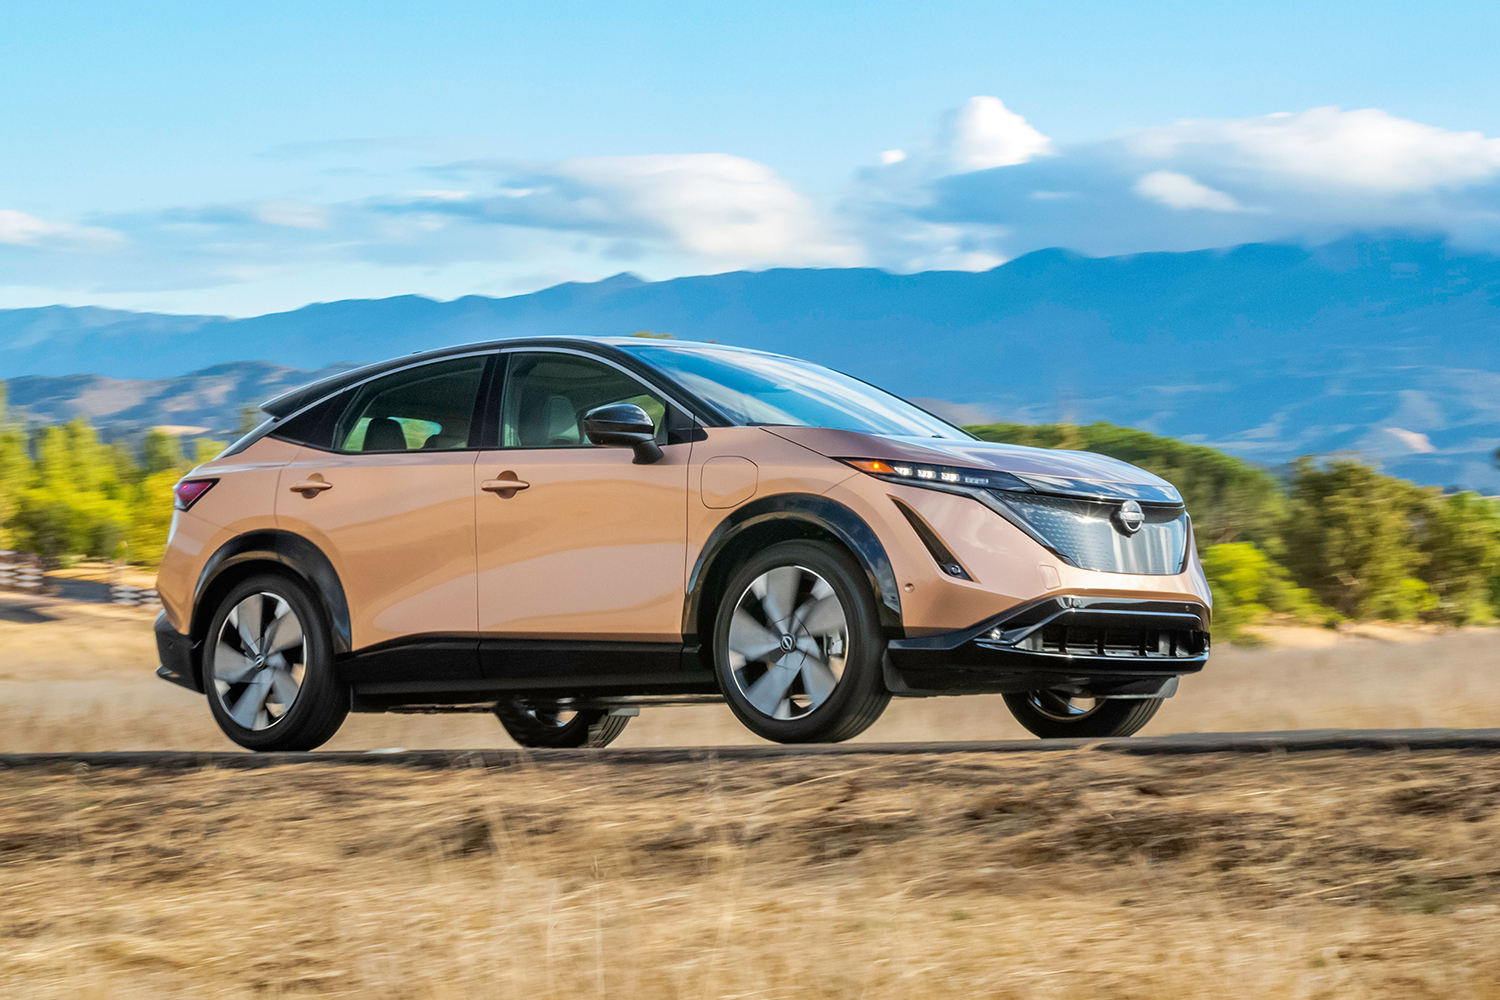 The new electric crossover from Nissan, the Ariya, driving in the sunlight with mountains in the background